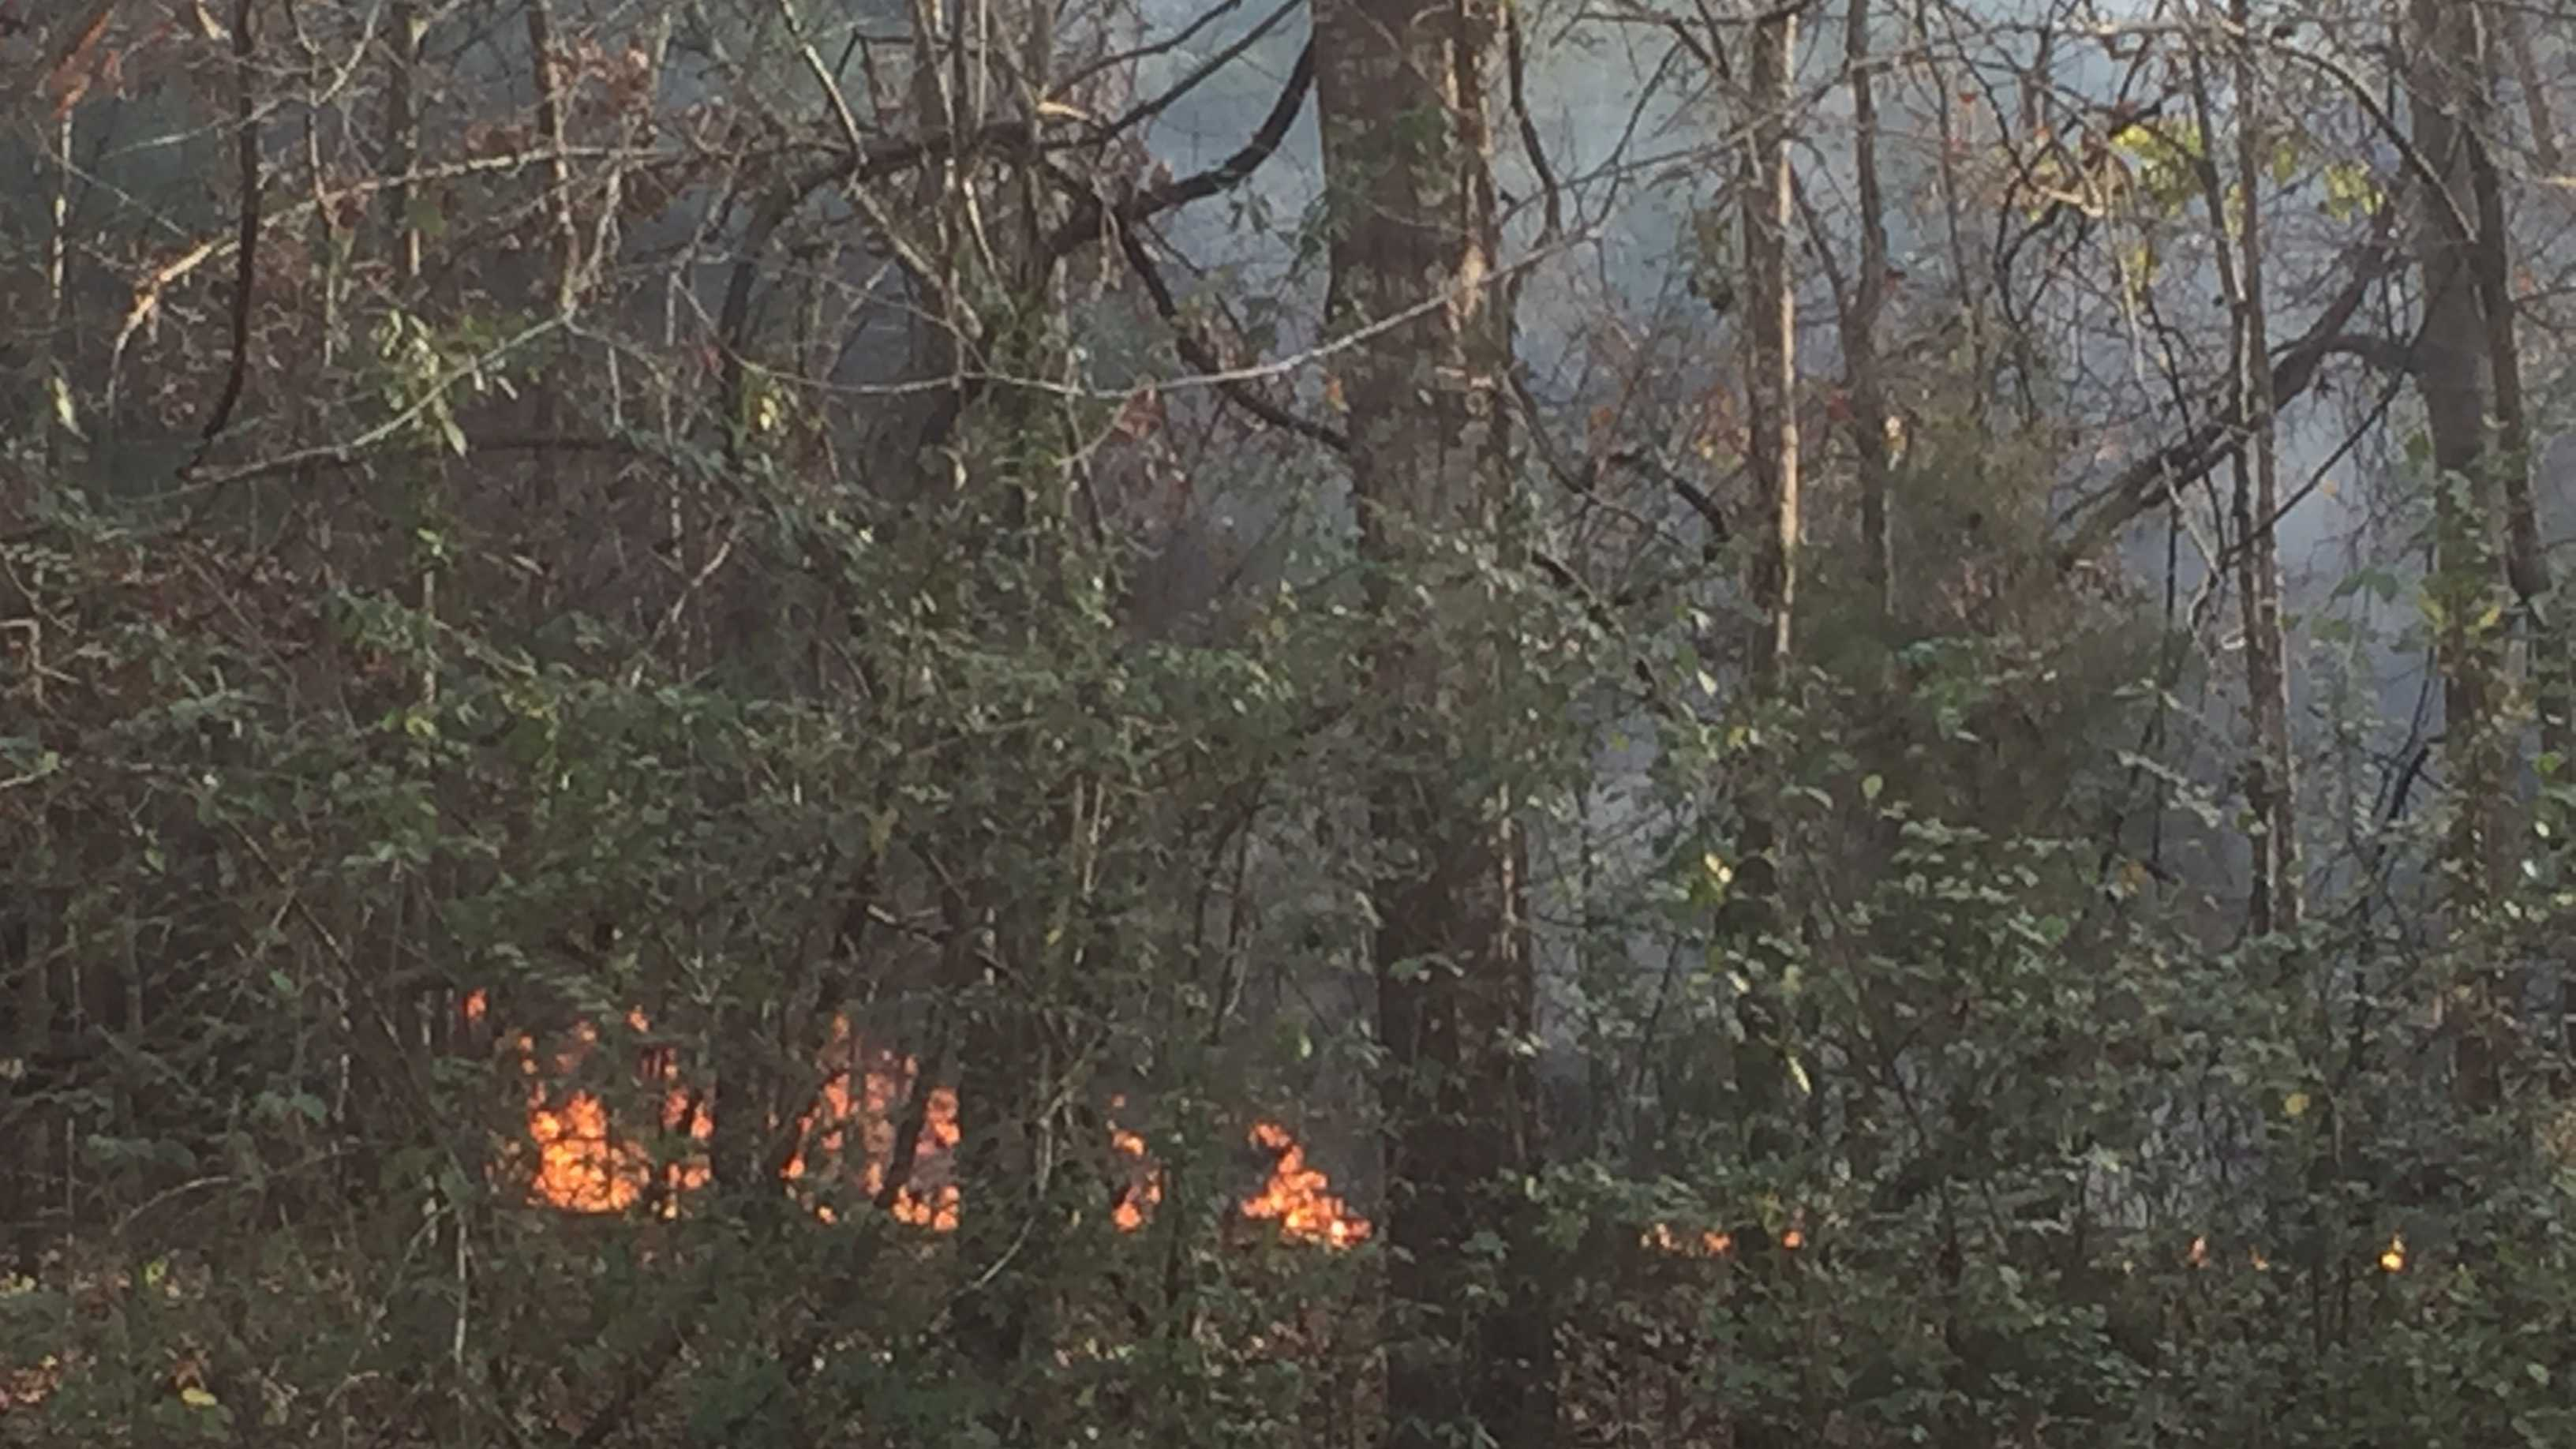 Firefighters are on the scene of a wildfire in Terry.